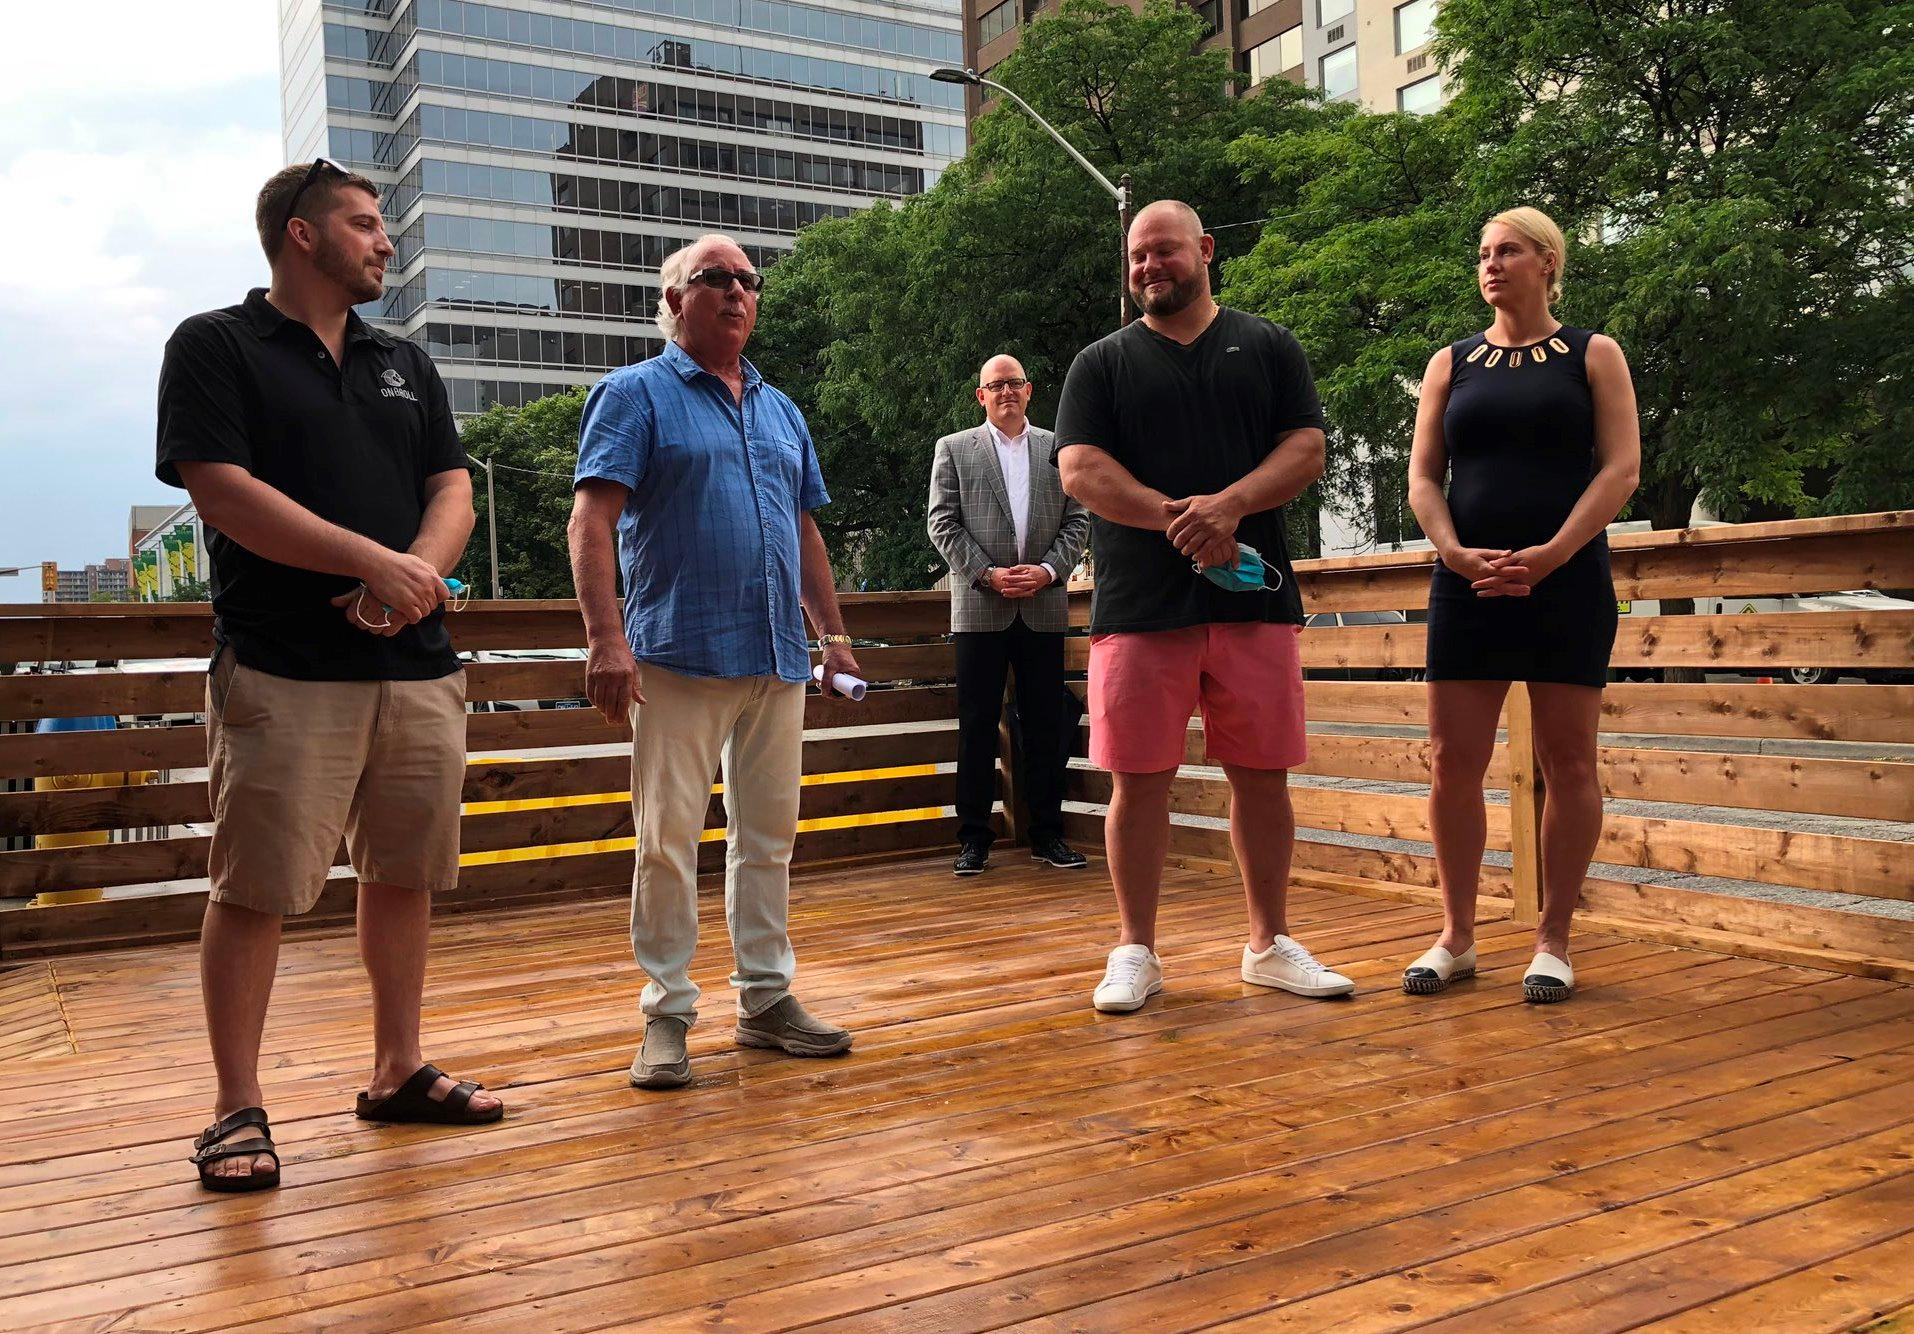 am800-news-parklet-pitt-street-east-july-10-2020